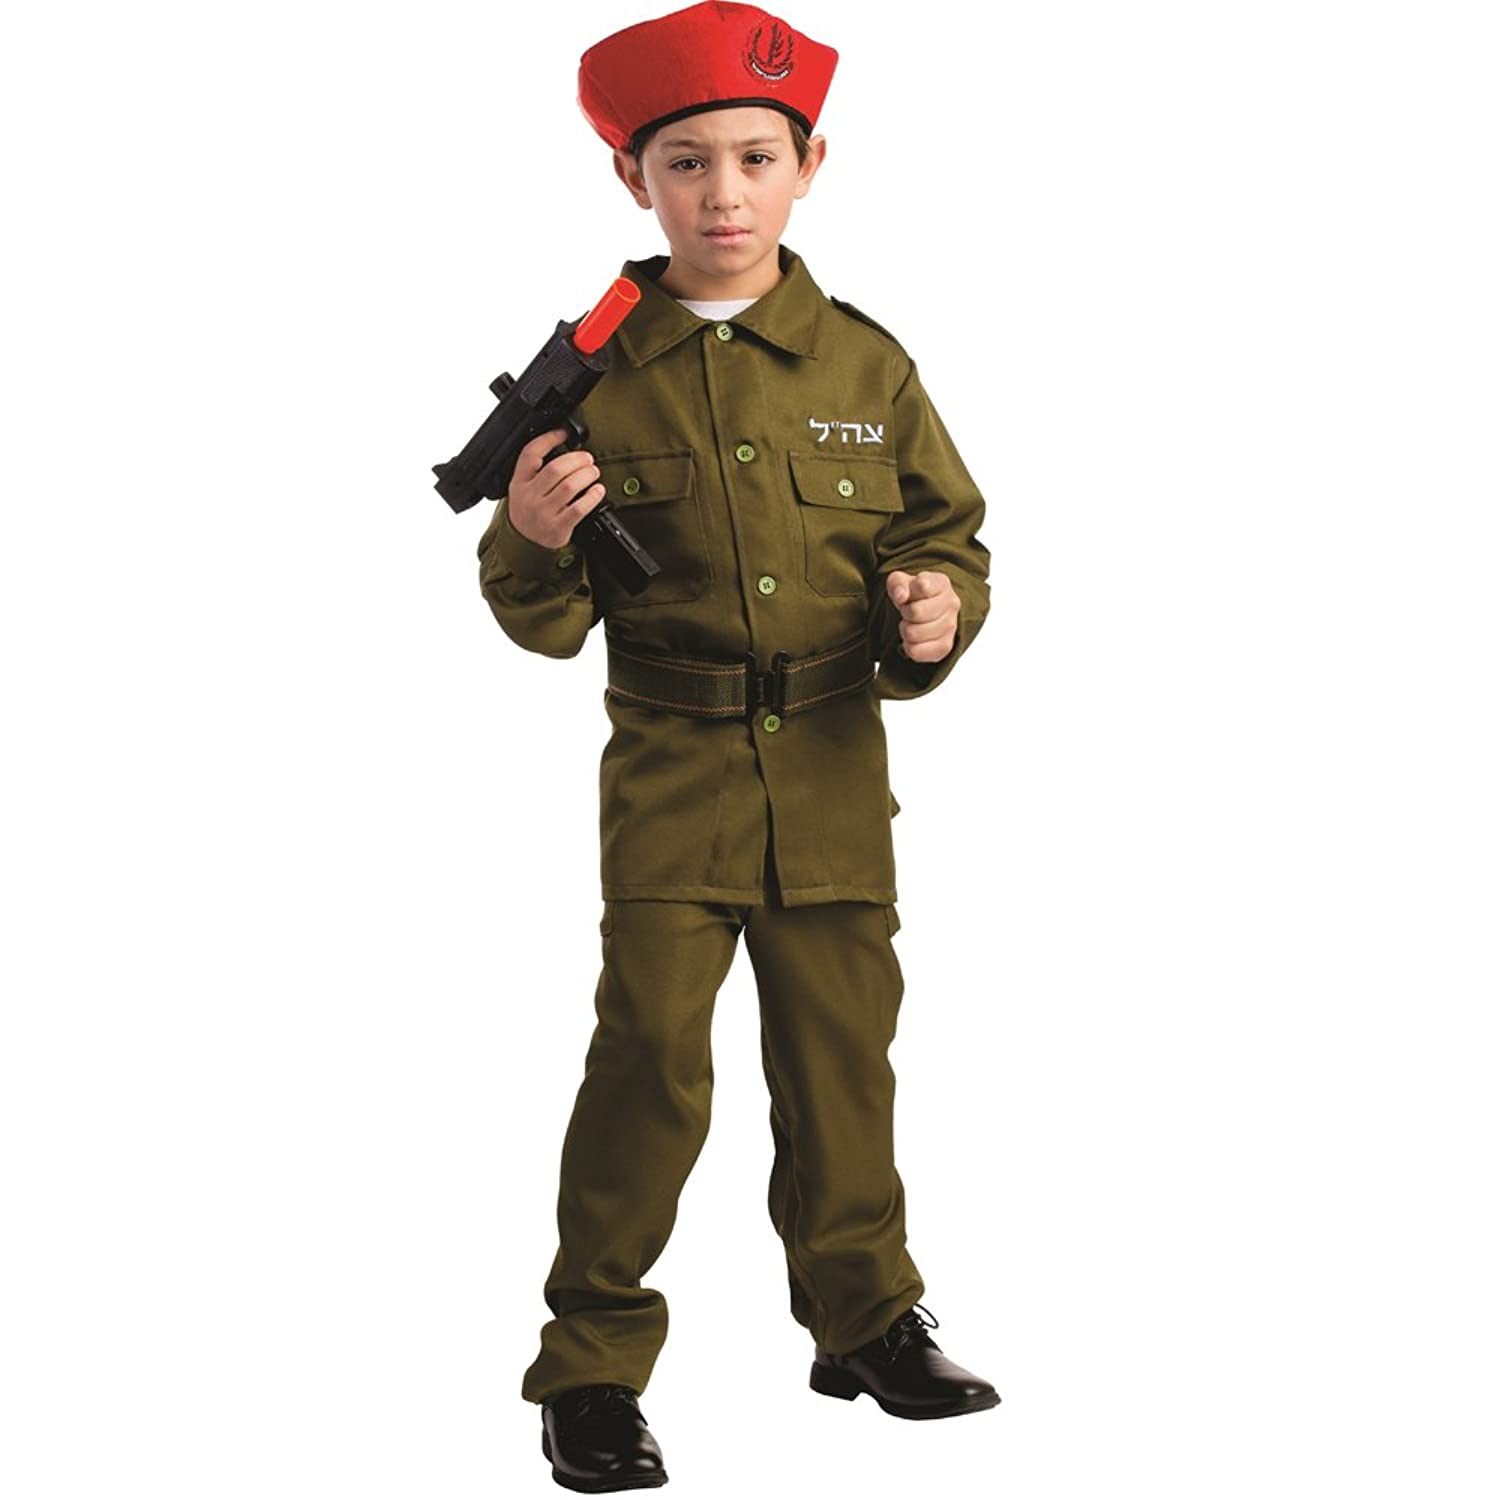 amazoncom israeli soldier costume for boys by dress america clothing - Boys Army Halloween Costumes